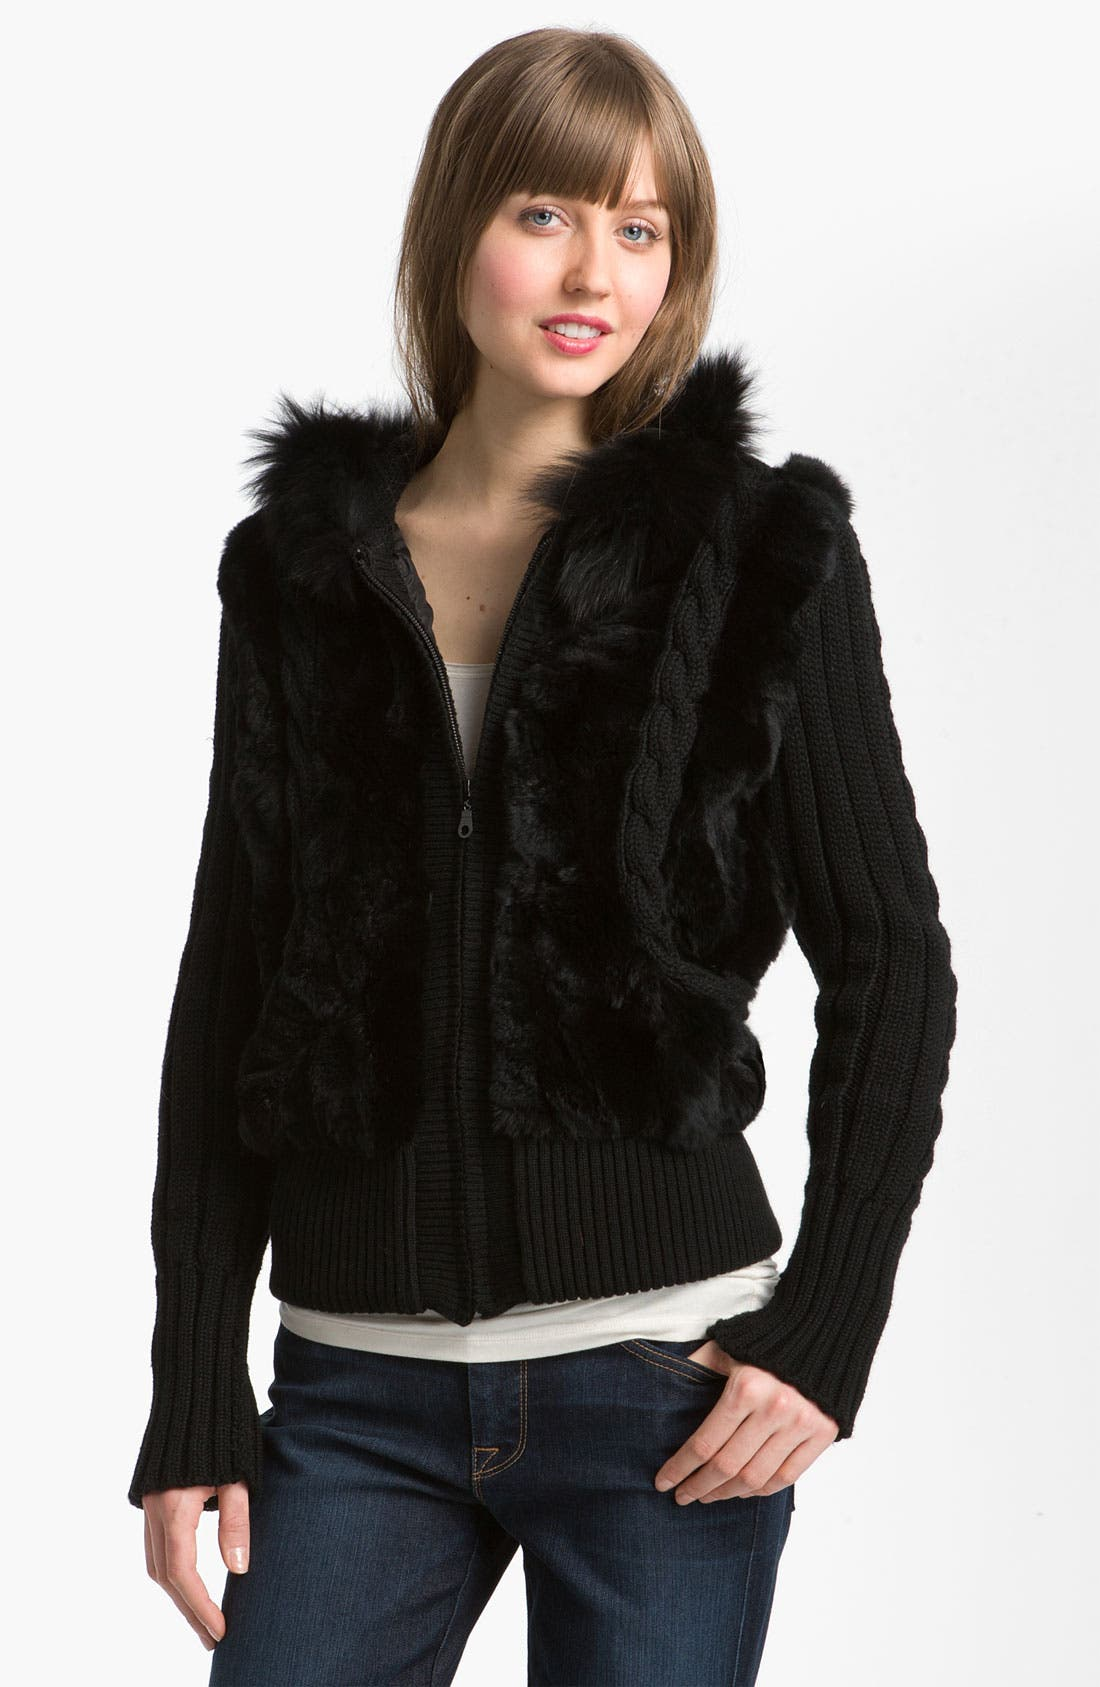 Alternate Image 1 Selected - Laundry by Shelli Segal Genuine Fur Trim Hooded Knit Jacket